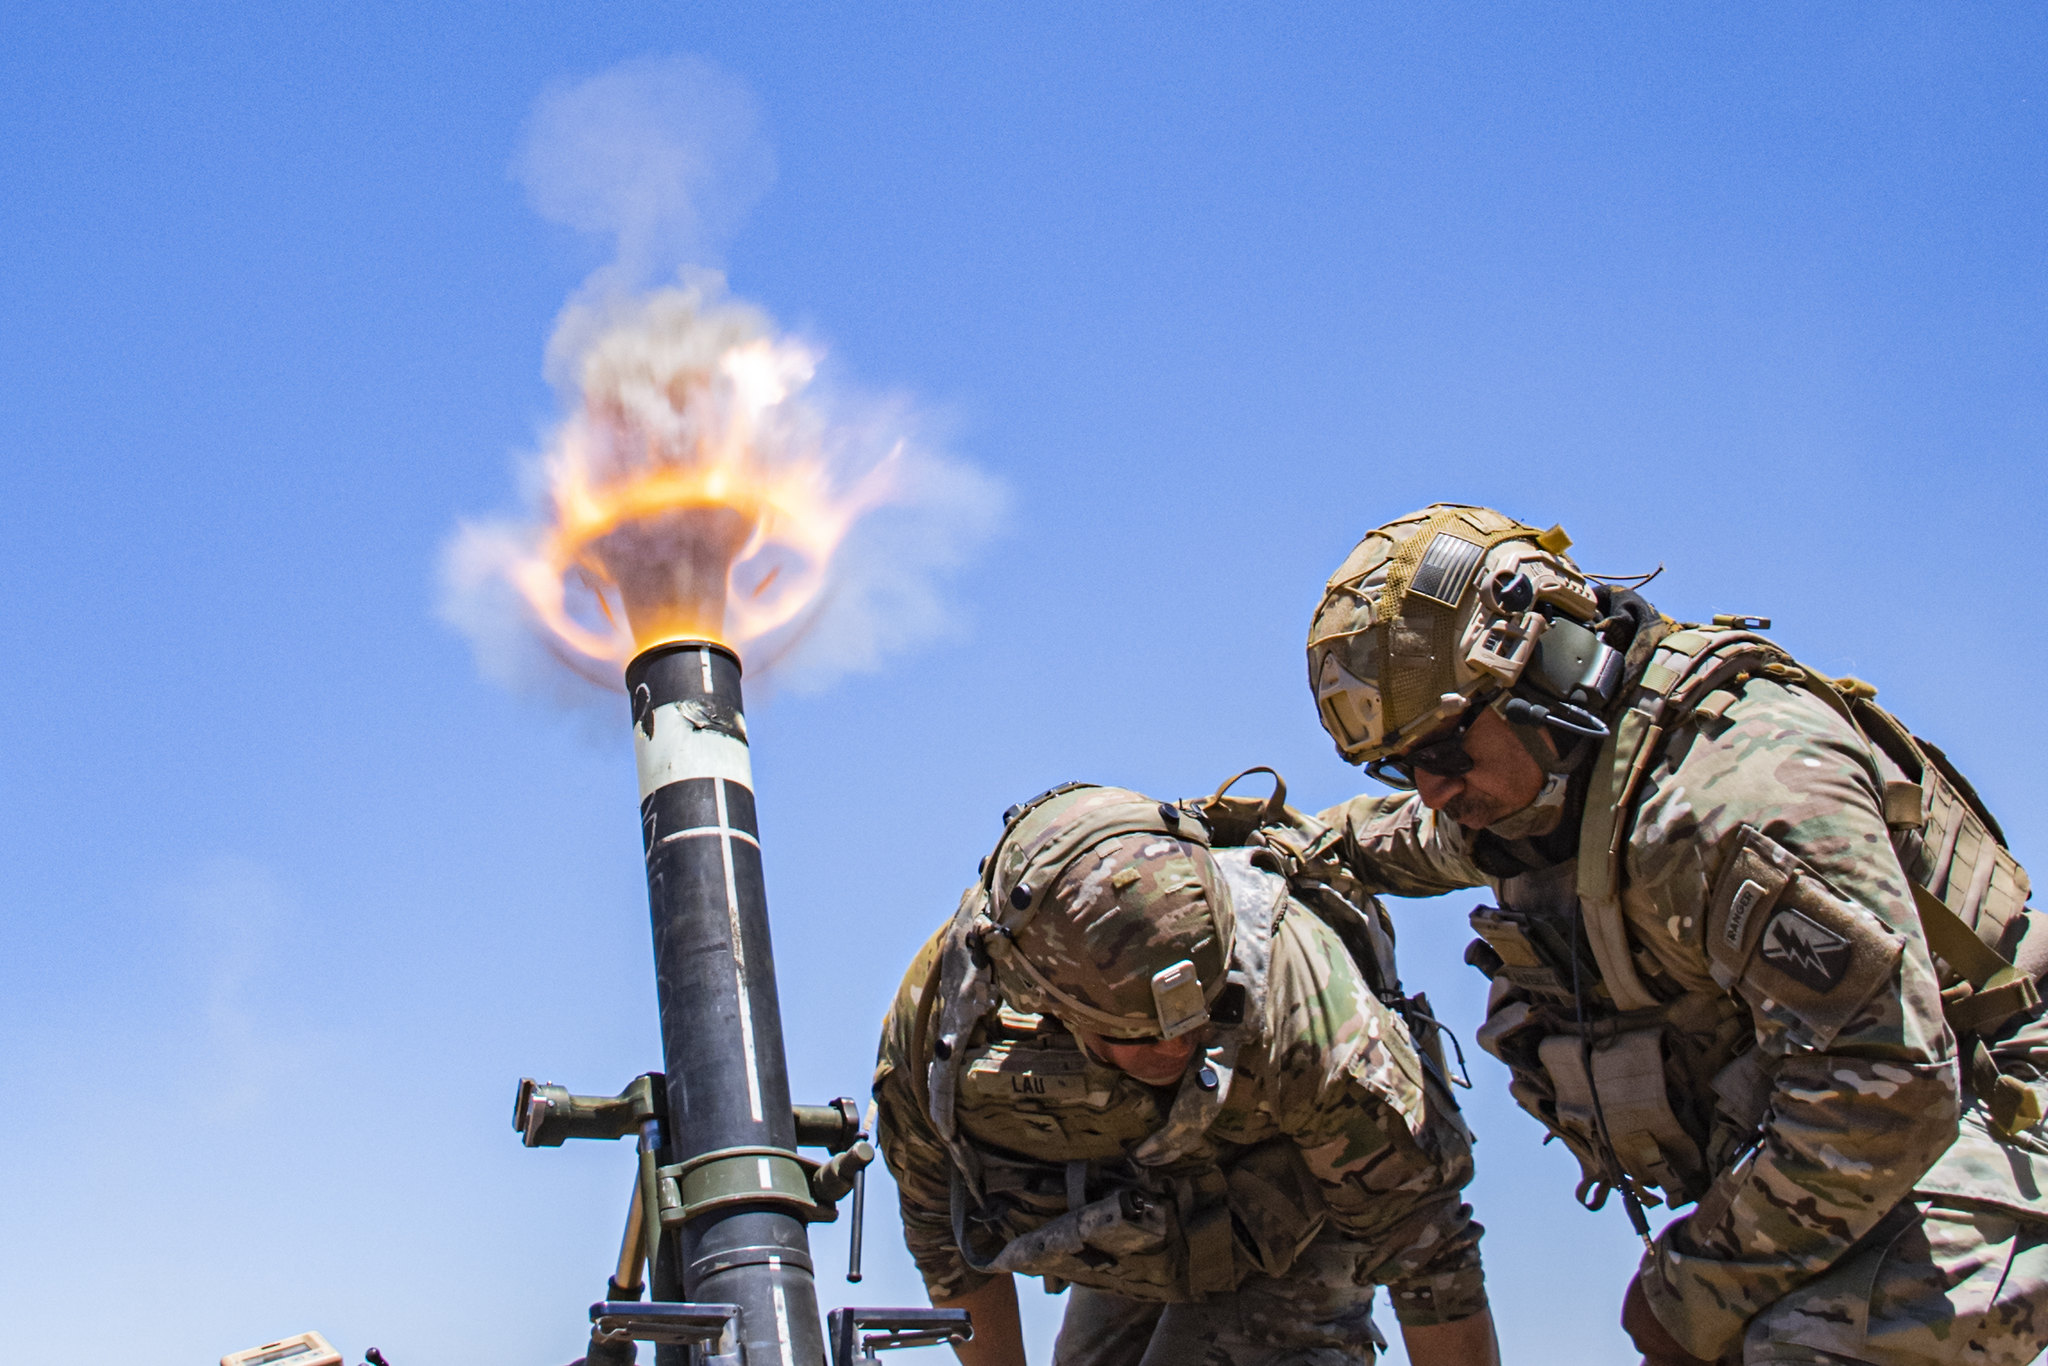 Col. Randy Lau, brigade commander of the 79th Infantry Brigade Combat Team, California National Guard, fires a 120mm mortar during a live-fire exercise at Camp Roberts, Calif. (Staff Sgt. Walter H. Lowell/Army)